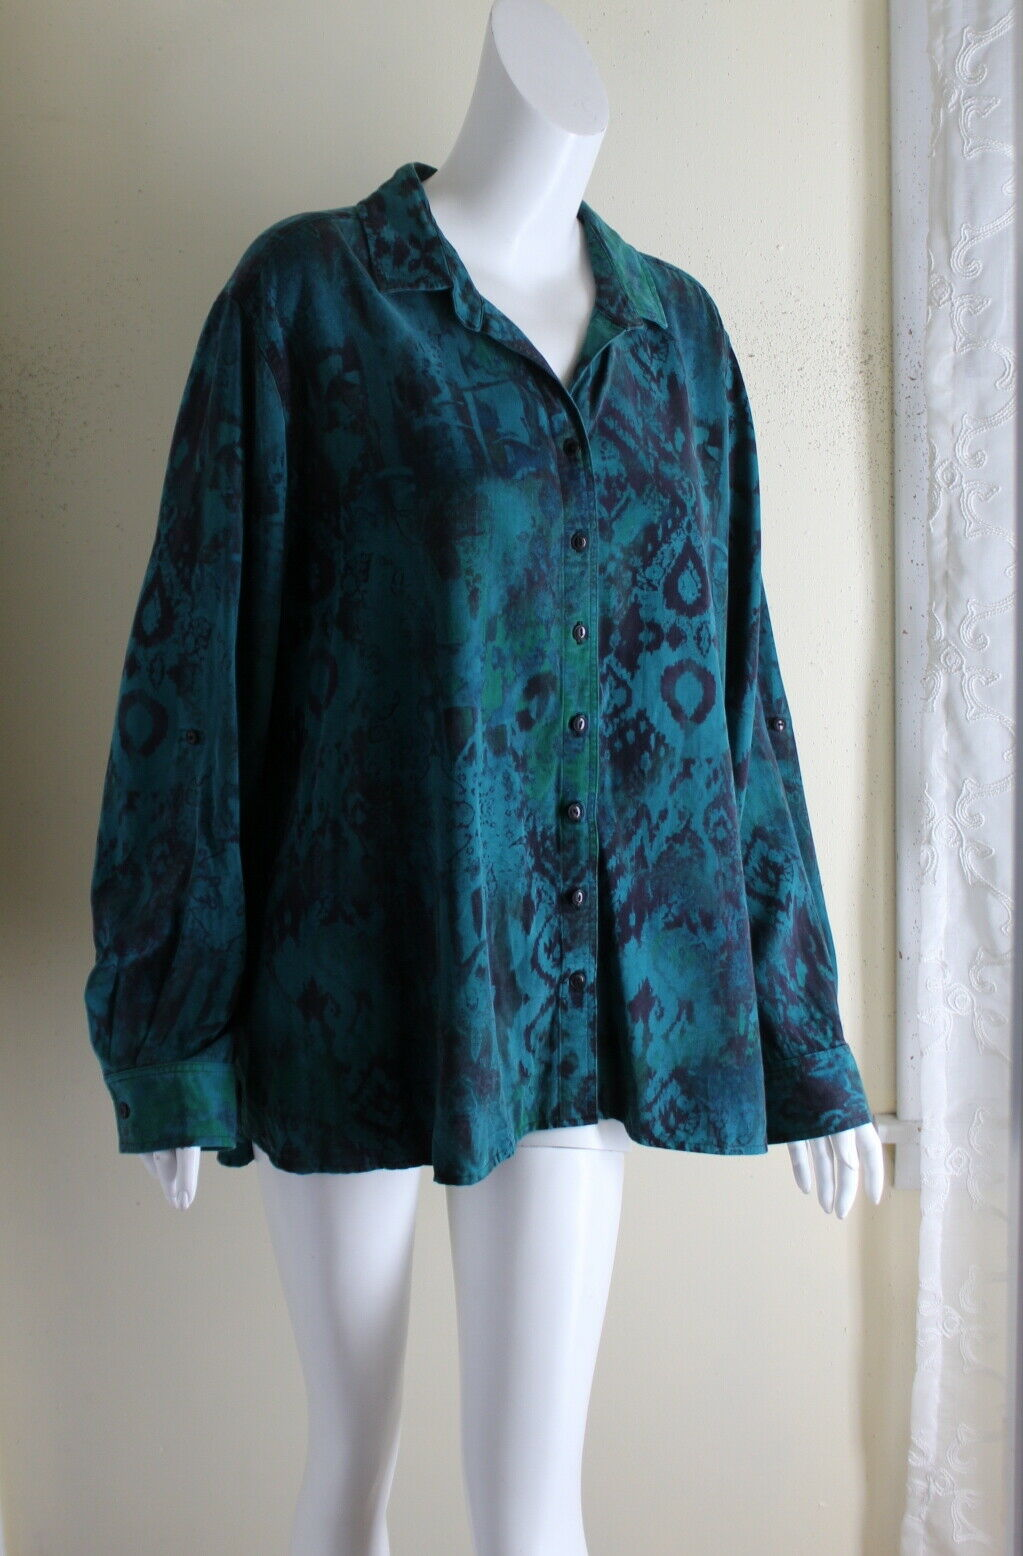 Tianello - Sz XL Funky Loving Blouse A-Line Art-to-Wear Printed Tunic Shirt Top